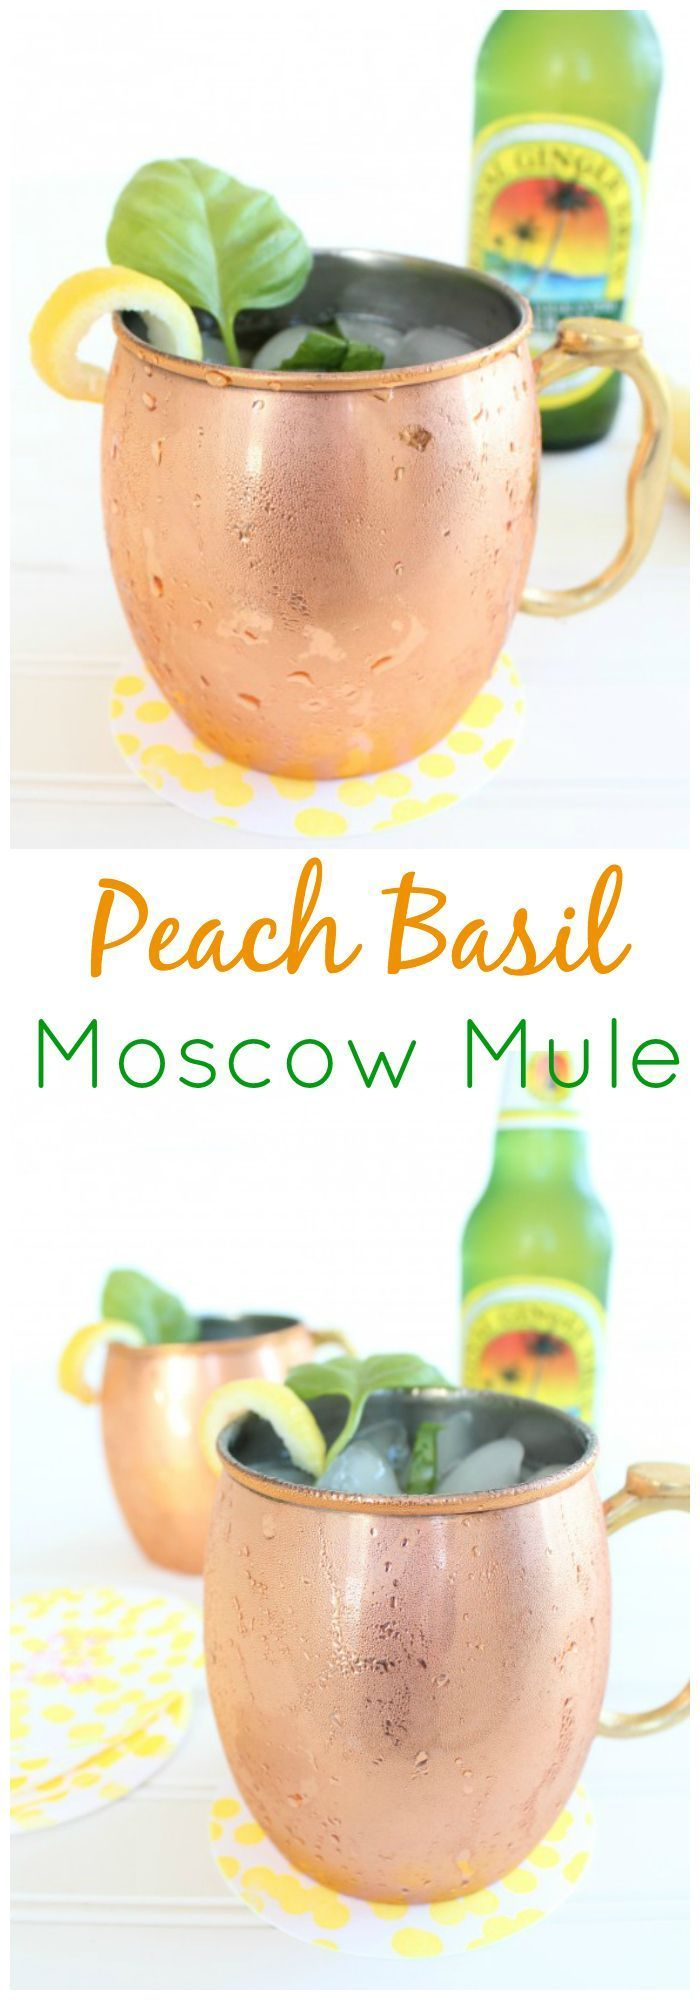 Grab a couple of #WorldMarket Moscow Mule Mugs and whip up this refreshing twist…